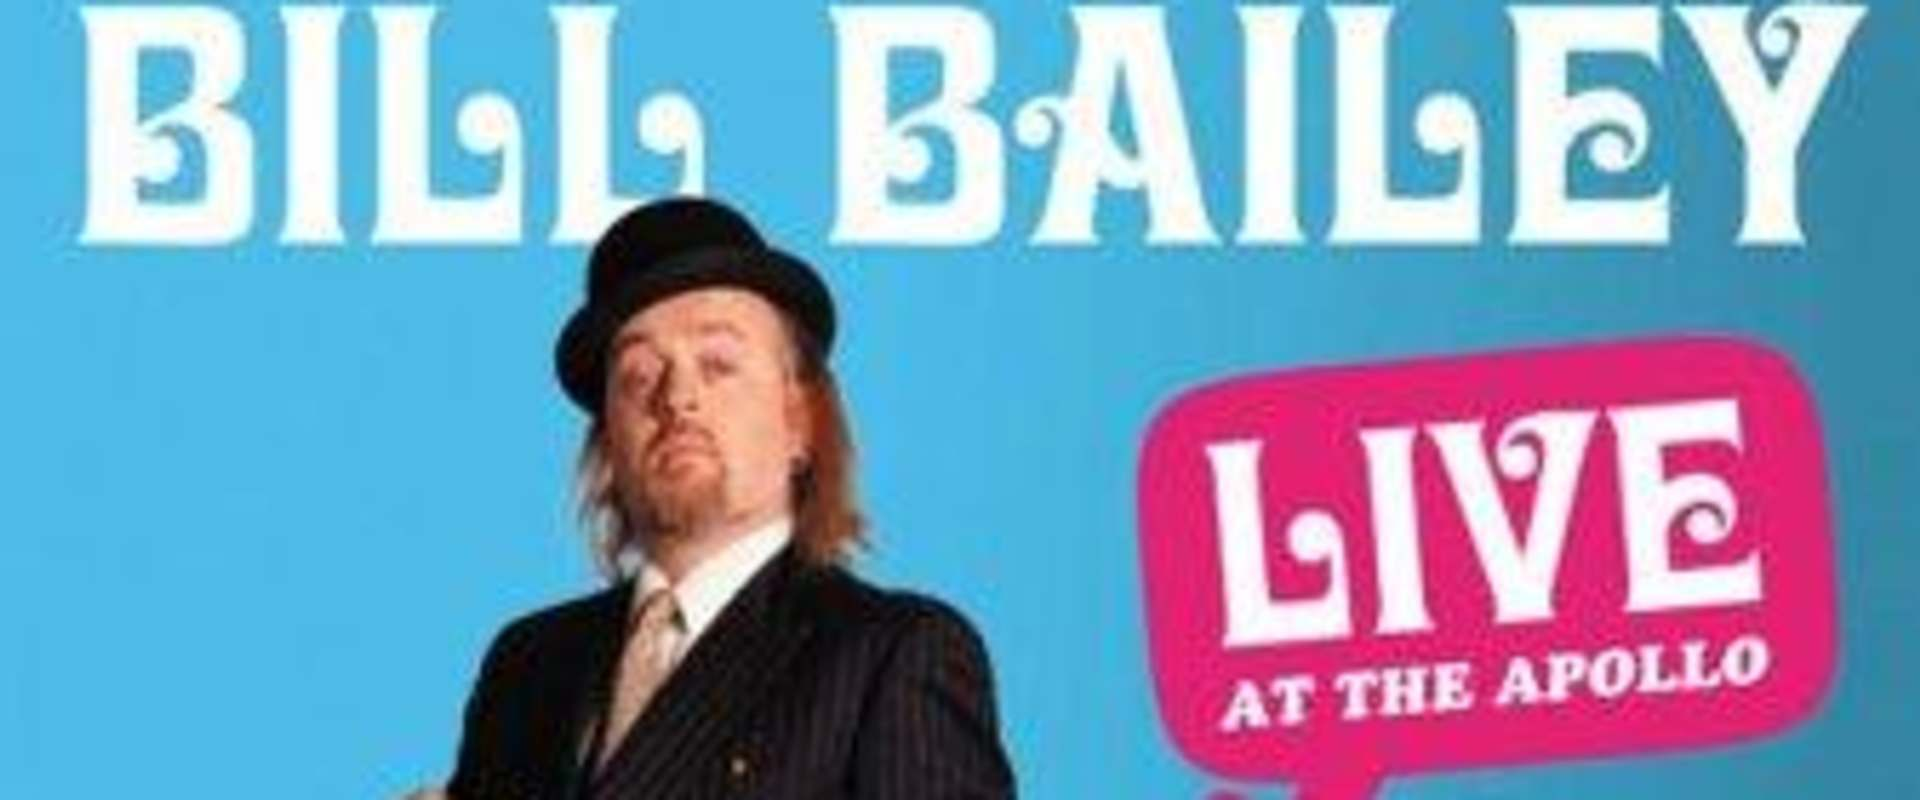 Bill Bailey: Part Troll background 2